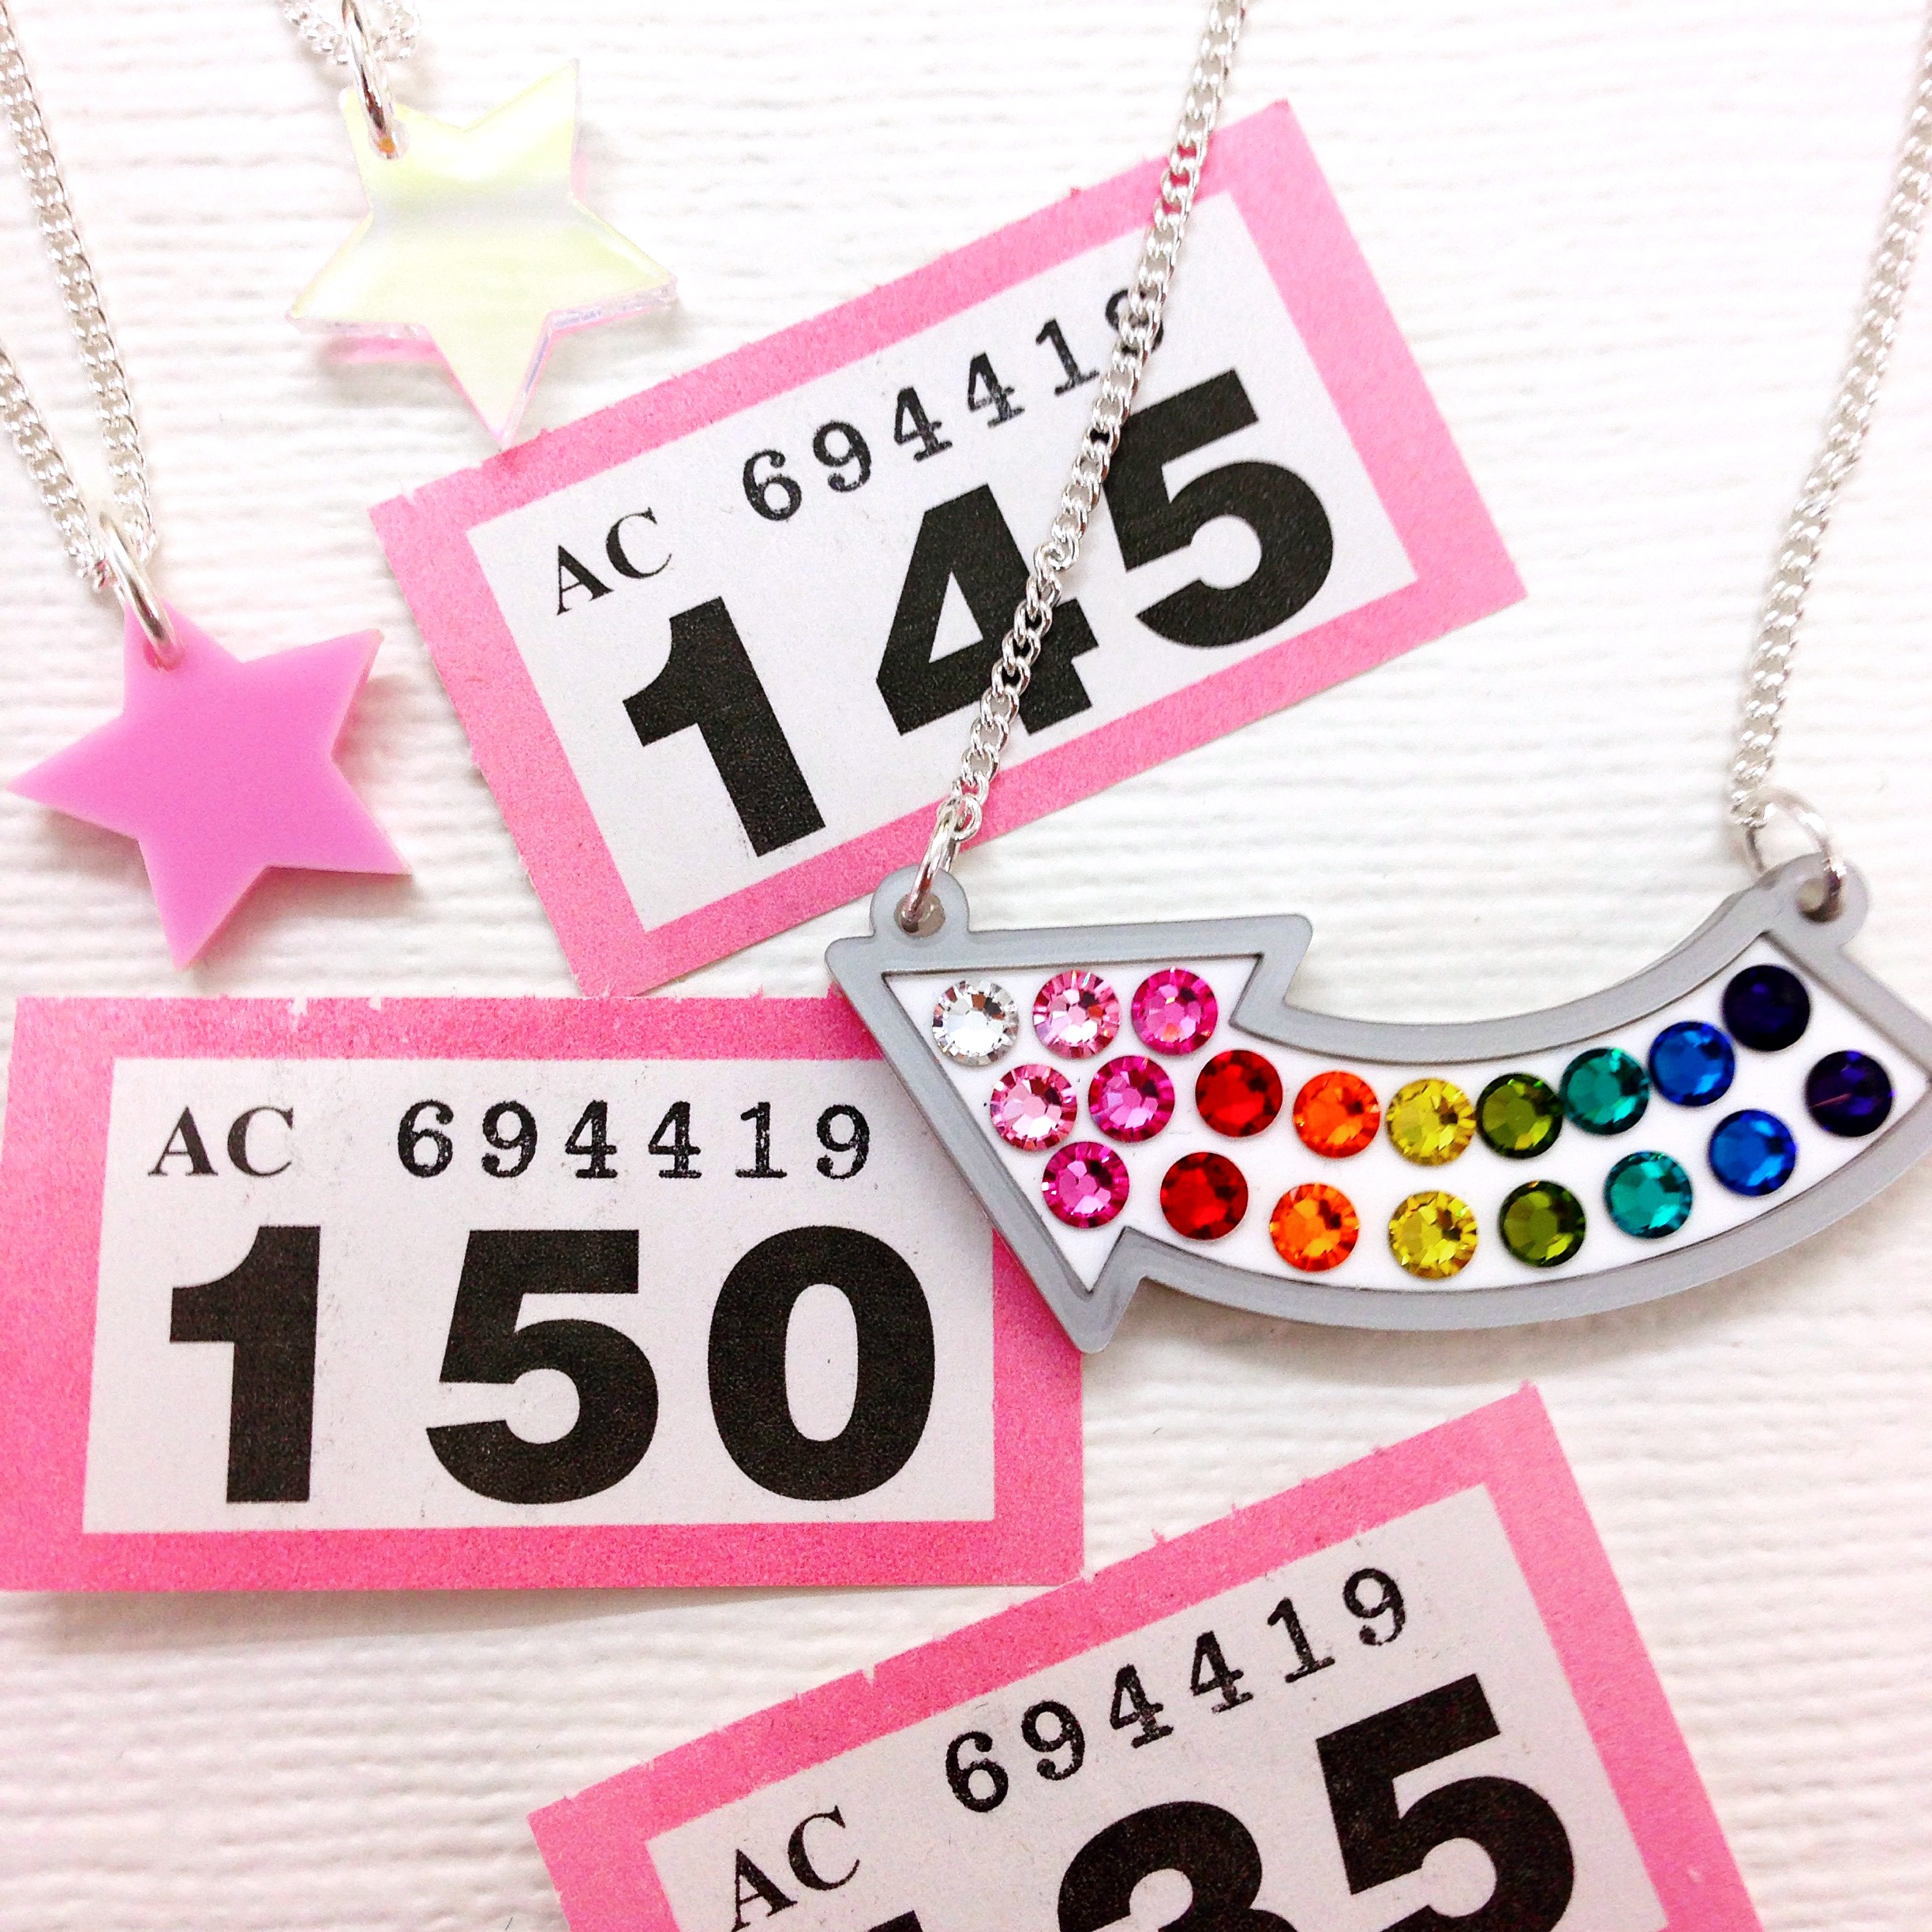 will you be trying your luck prizes are while stocks last so be quick make sure to show us your winning snaps tagging tattydevine good luck